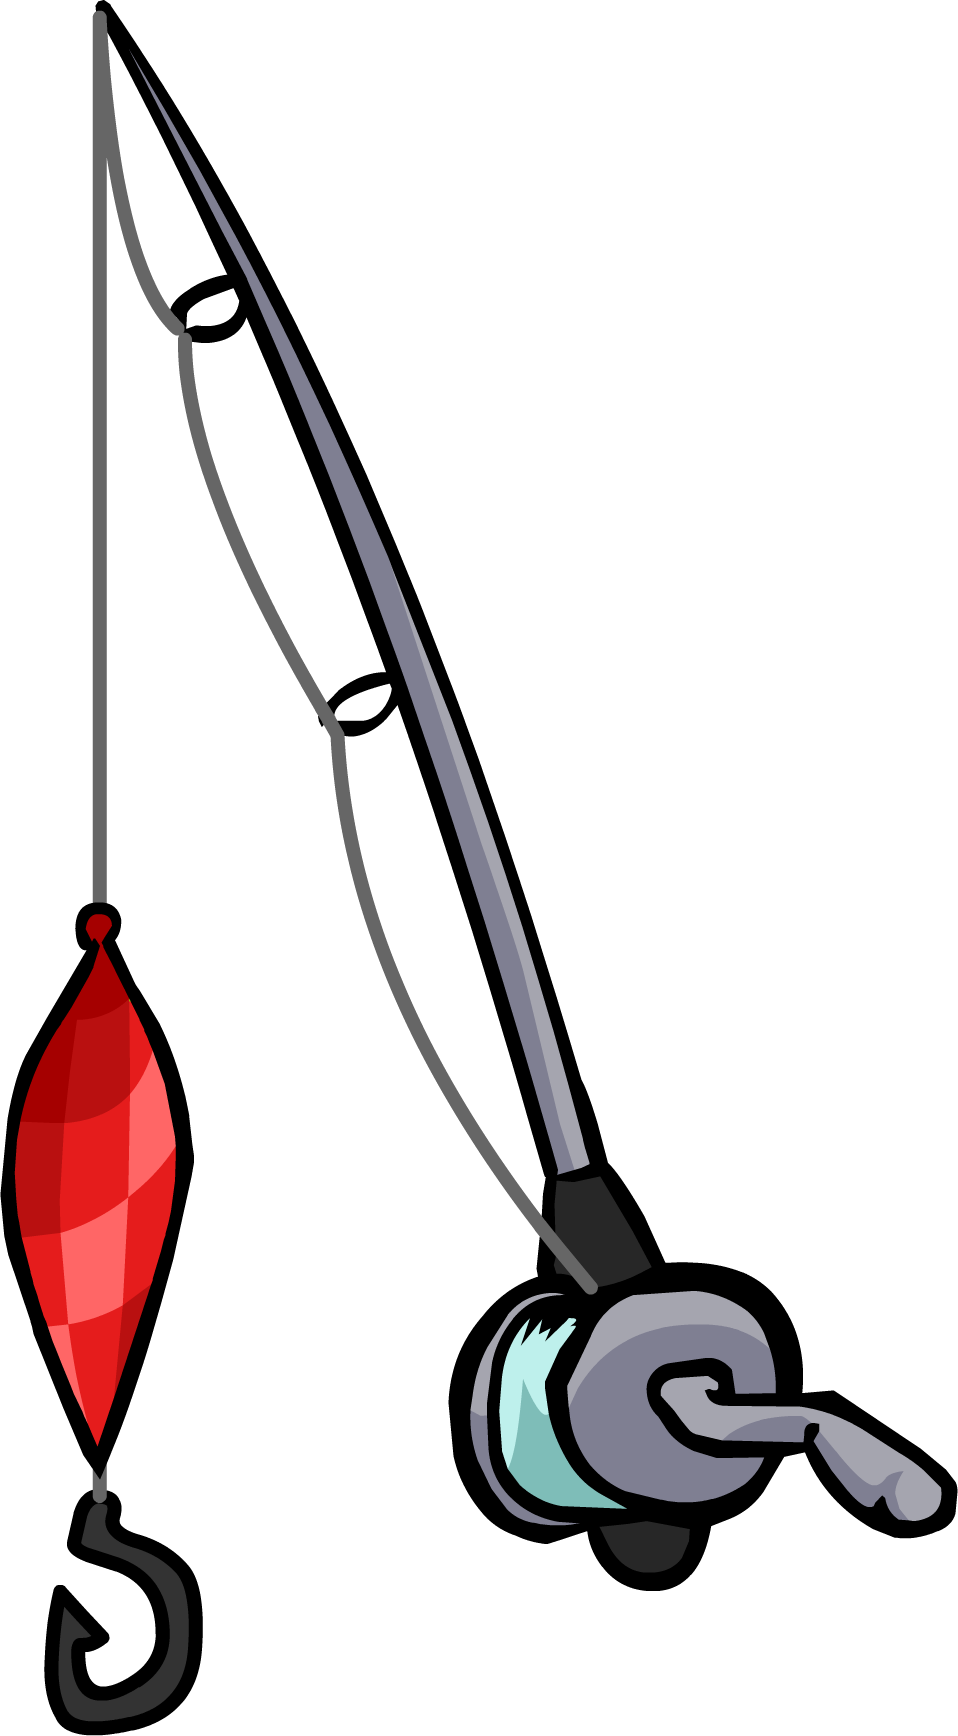 free download Sea club penguin wiki. Rod clipart fishing hat.